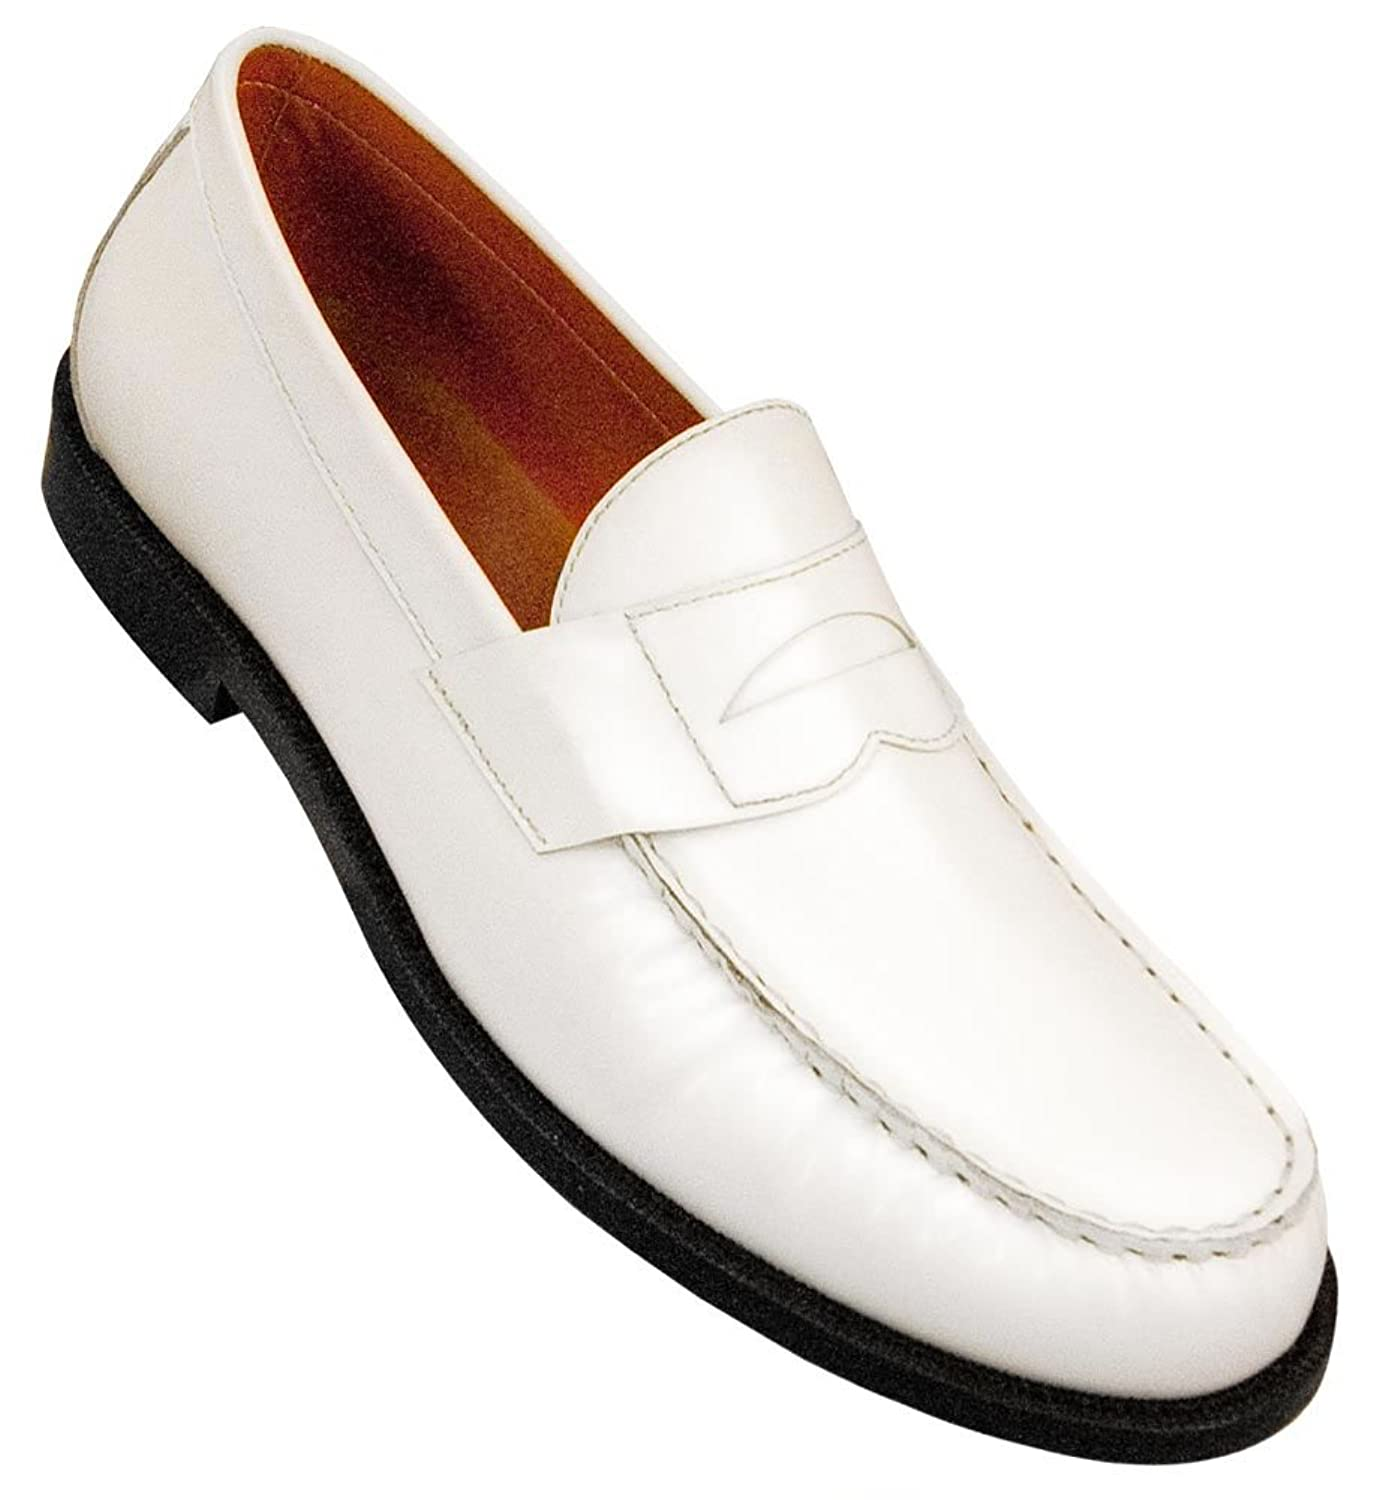 1940s Womens Shoe Styles Aris Allen Mens White Dance Loafers $48.95 AT vintagedancer.com